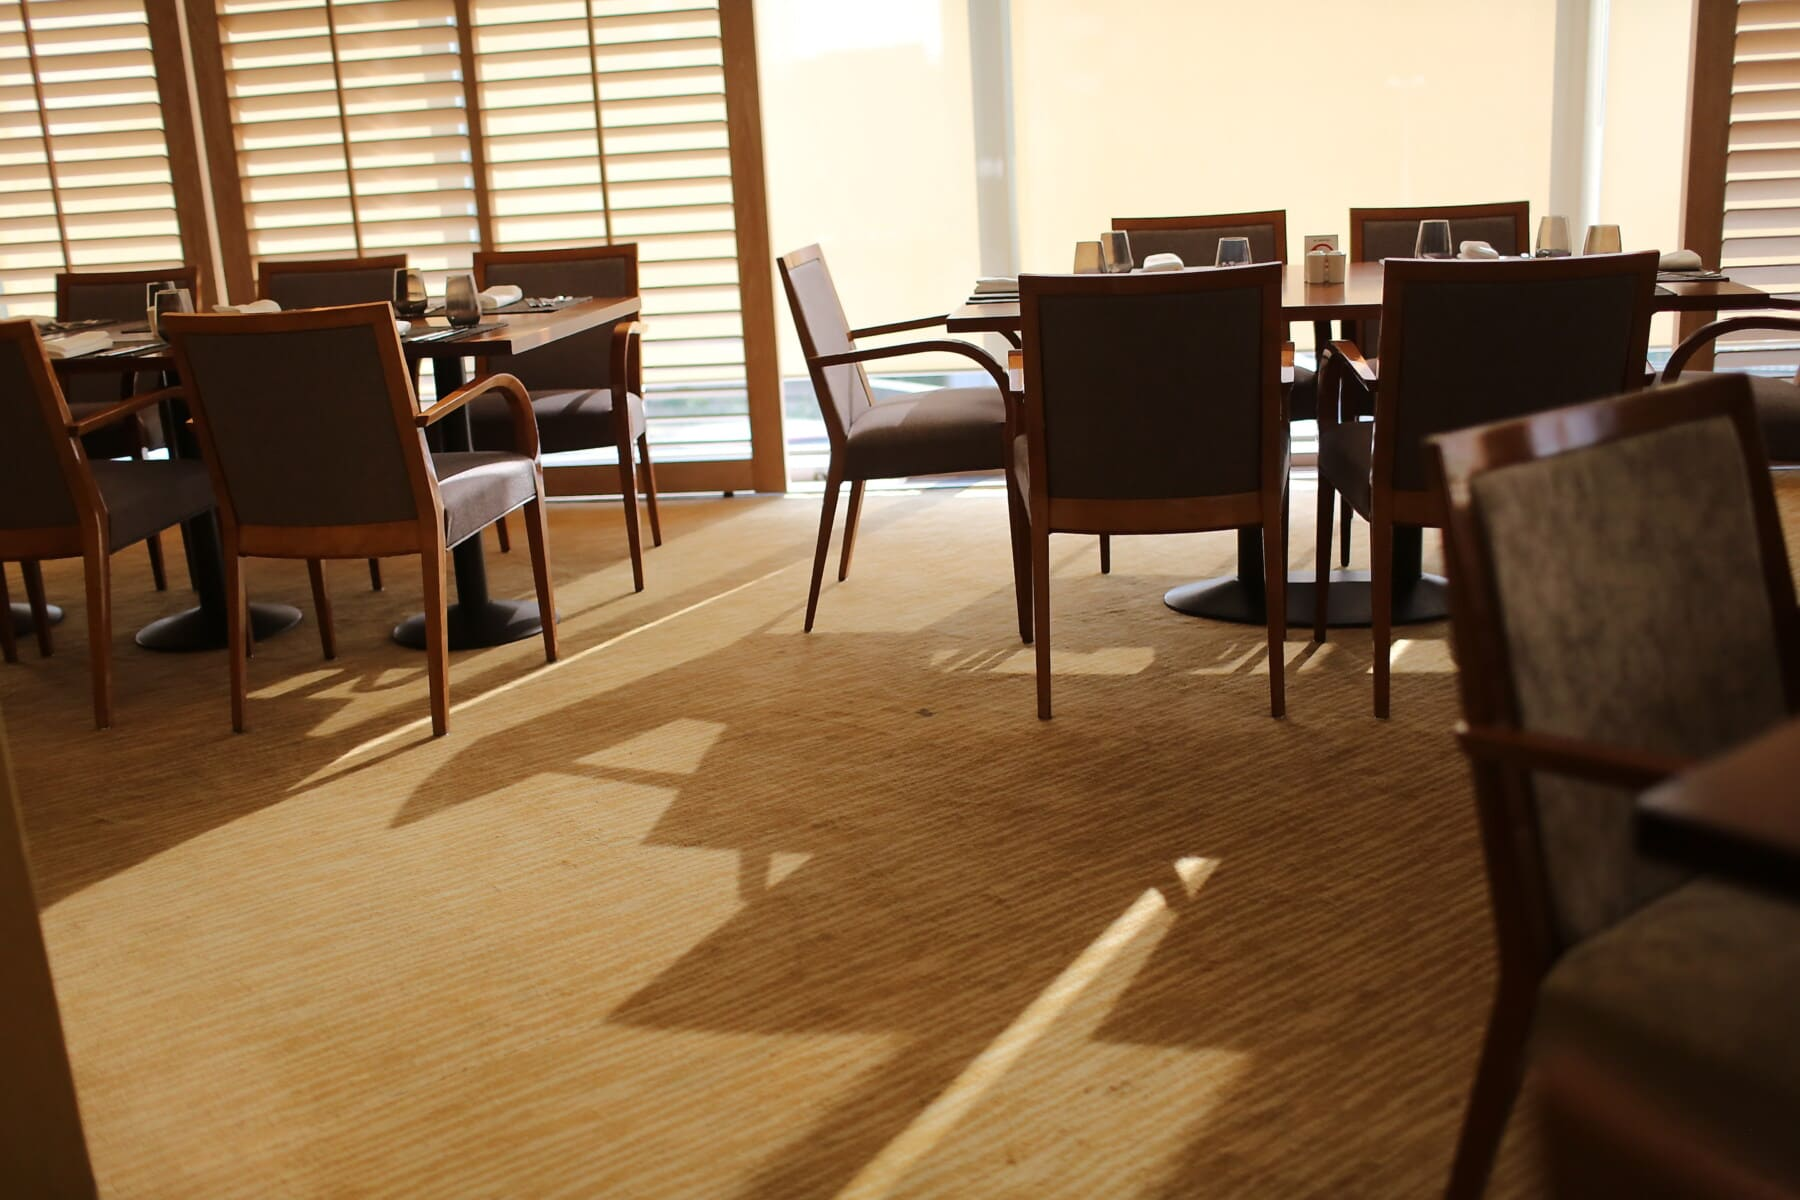 hotel, dining area, cafeteria, empty, furniture, table, chair, seat, room, interior